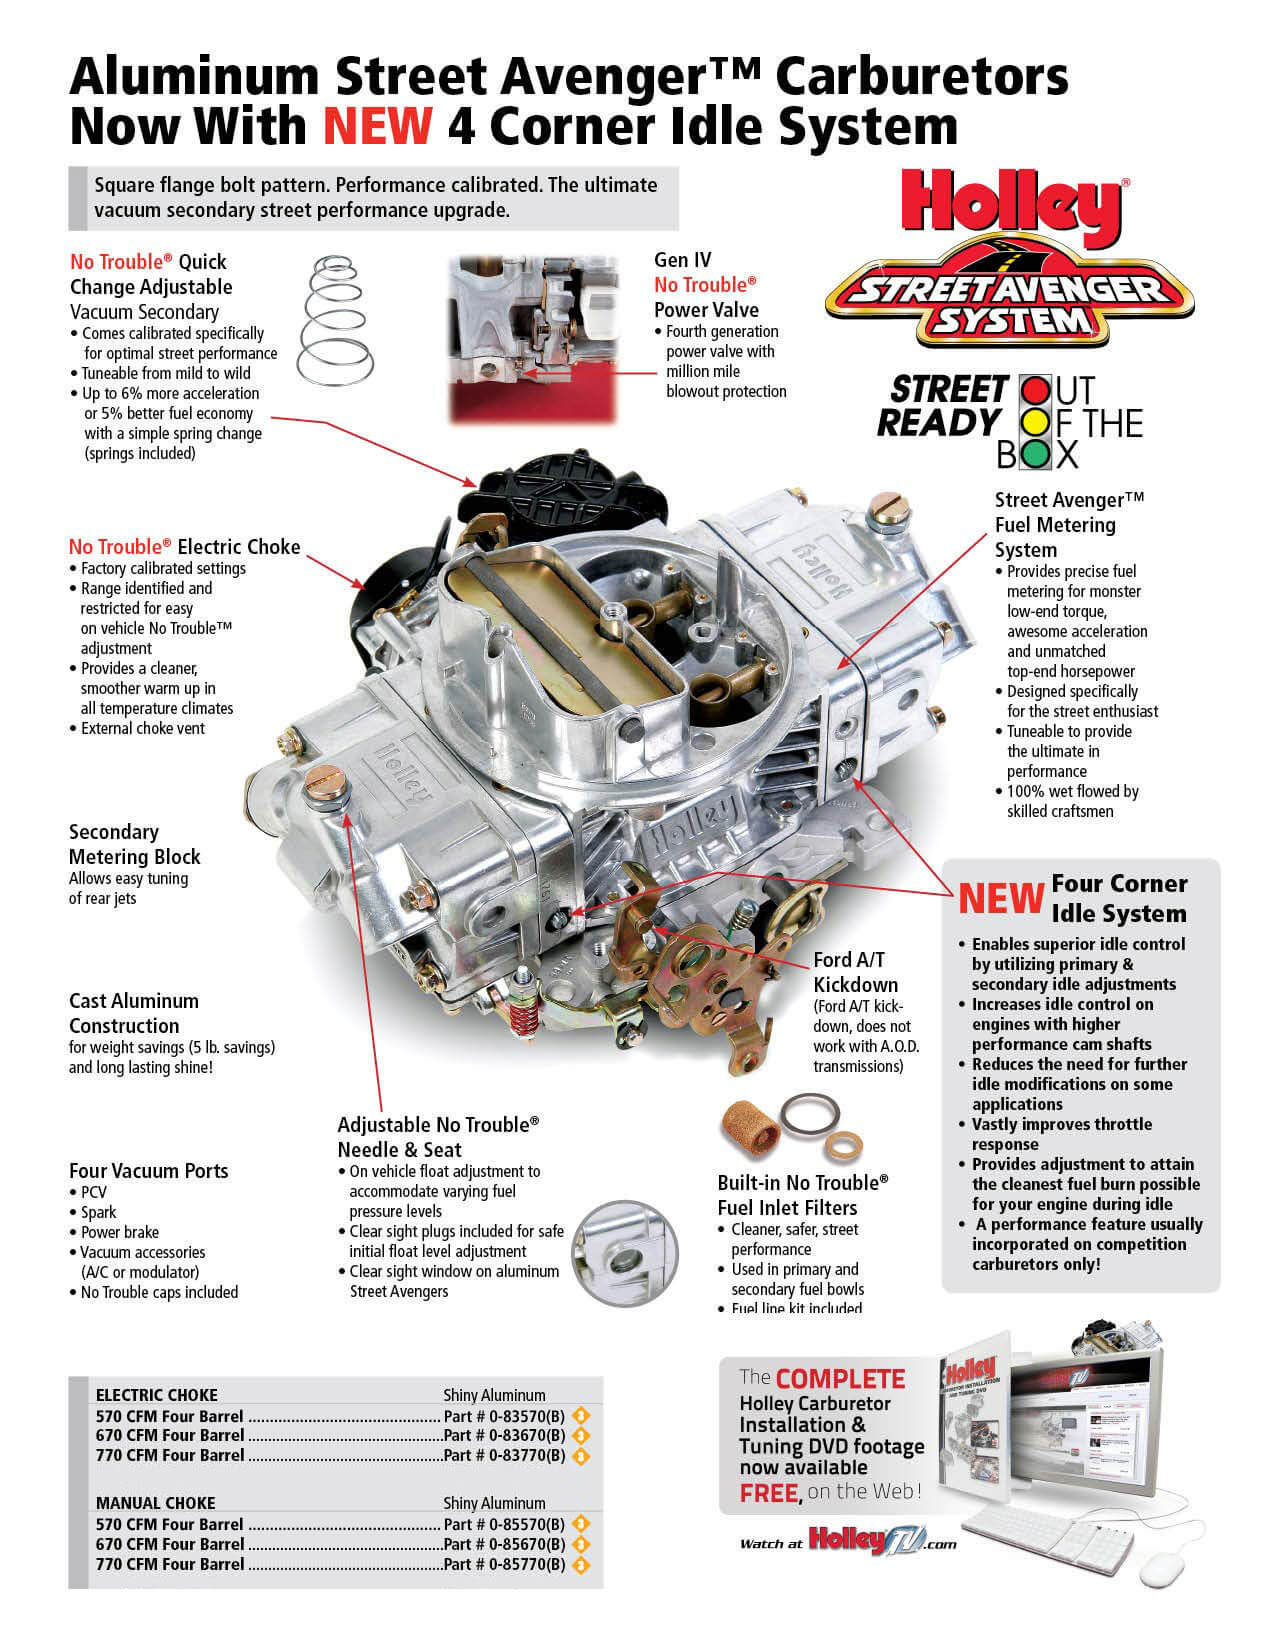 1967-1991 AMC V8 Holley 570 CFM Street Avenger Aluminum Carburetor